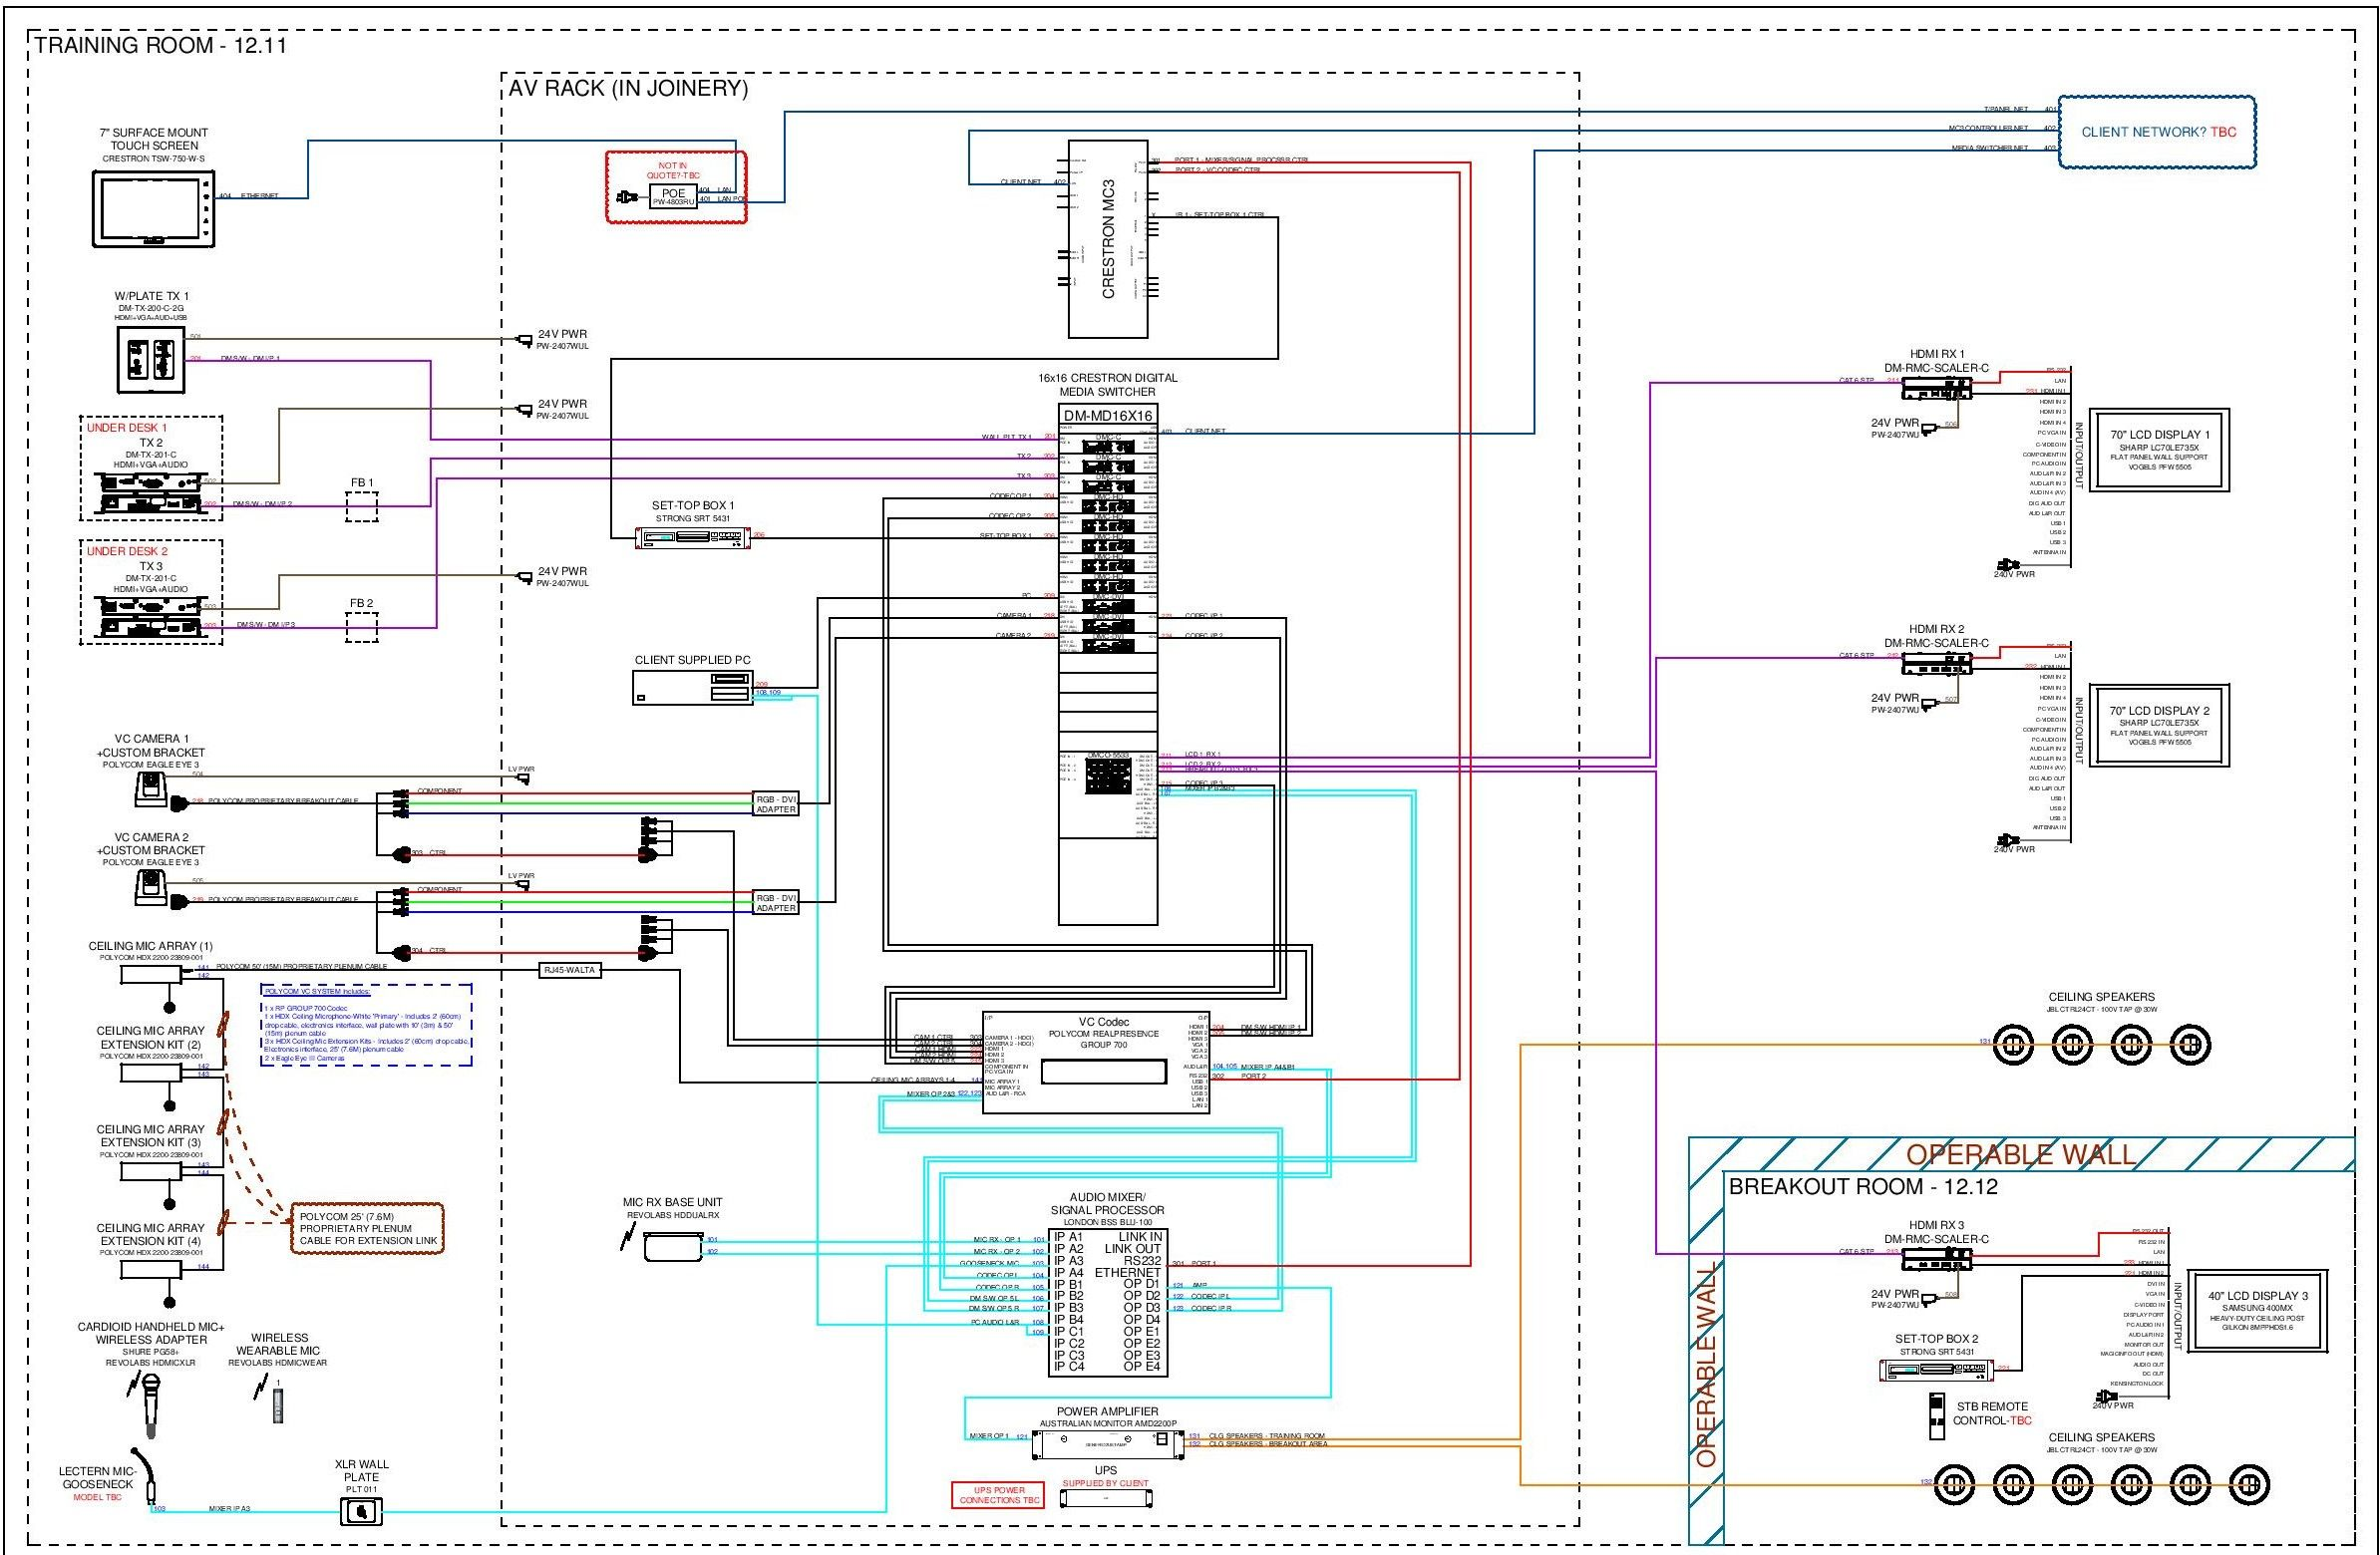 Av Wiring Schematic Training Room System With Operable Walls Type 181 Diagram